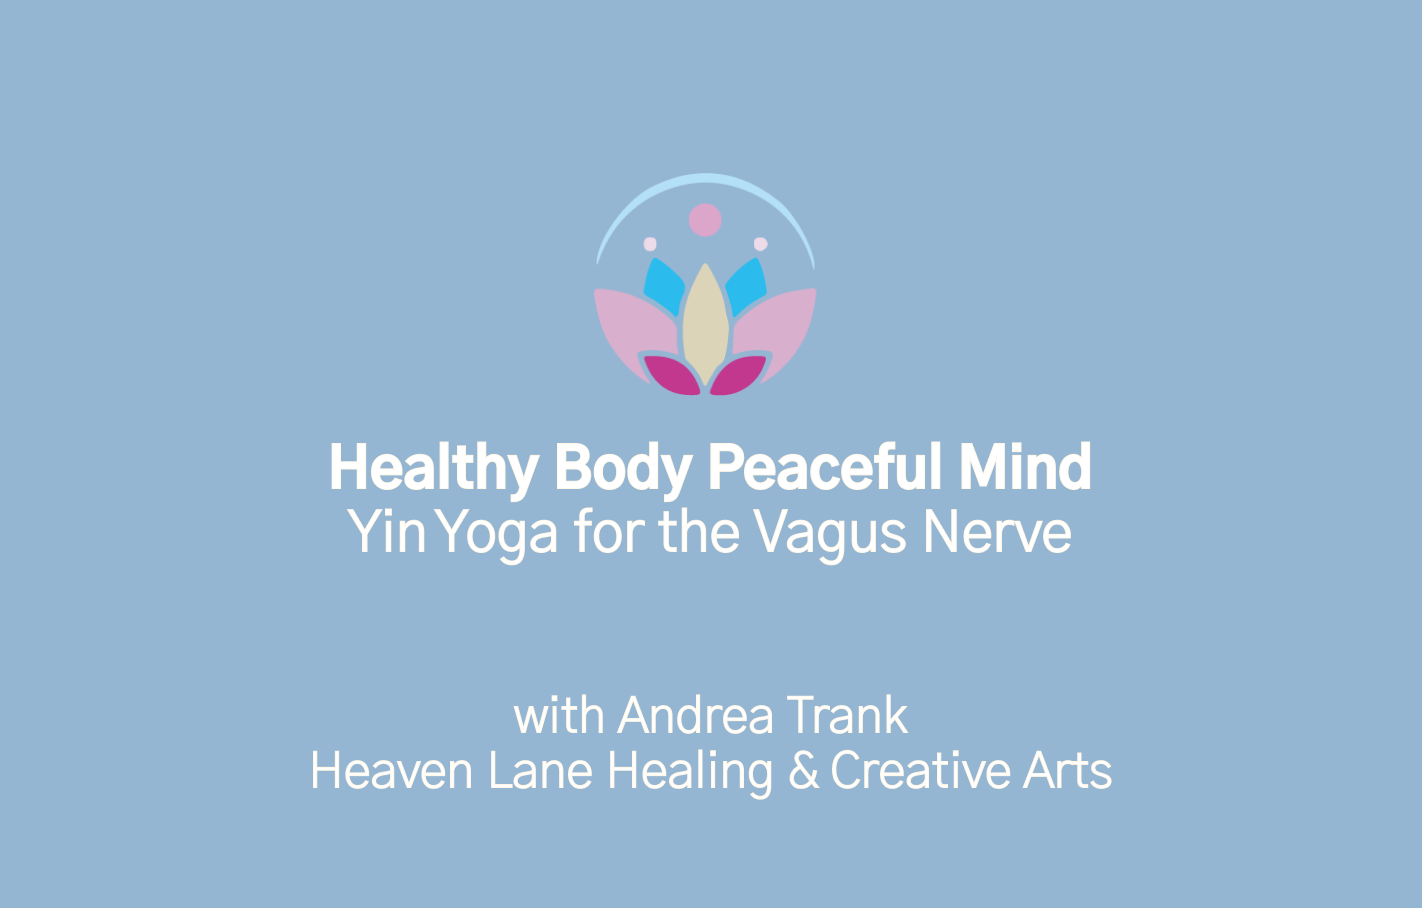 4. Yin Yoga for the Vagus Nerve